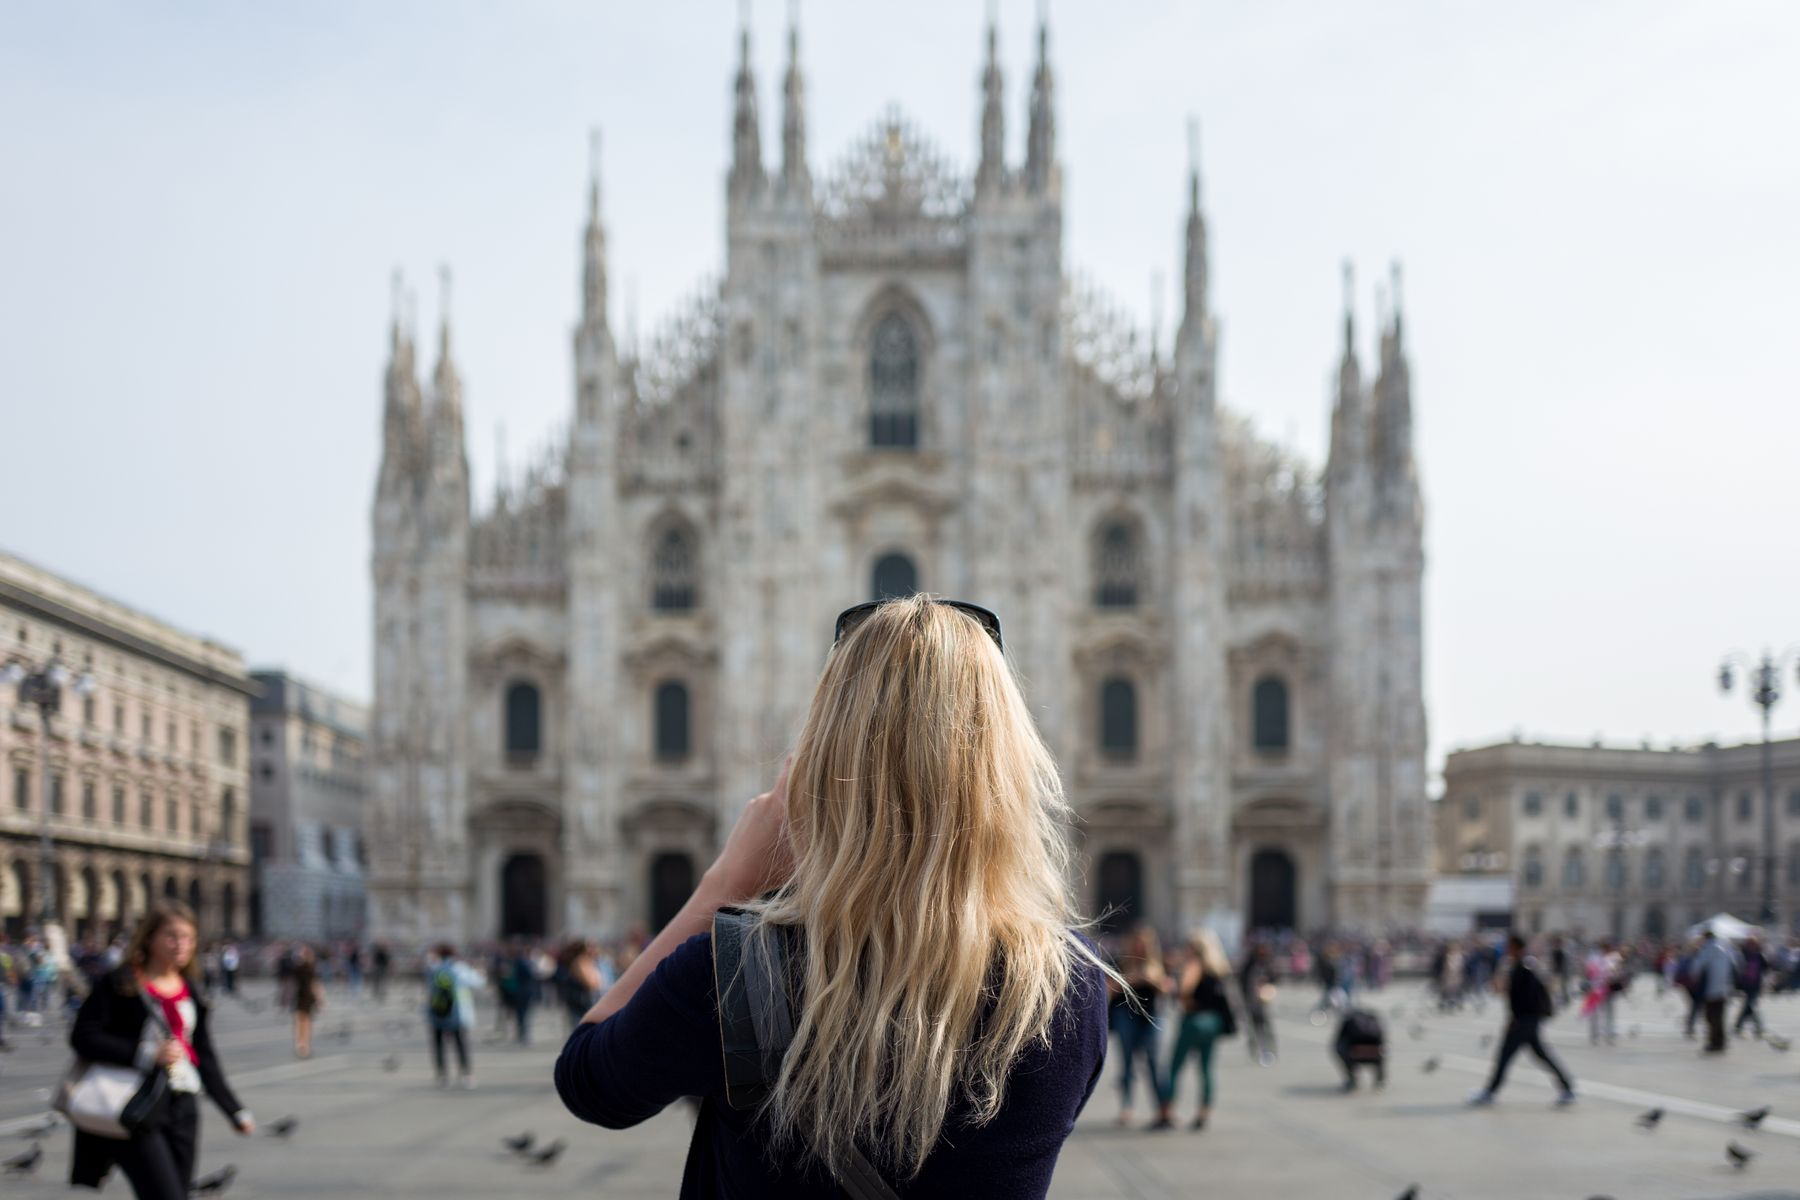 Female tourist taking a photo of the Duomo di Milano (Milan Cathedral) in Italy.